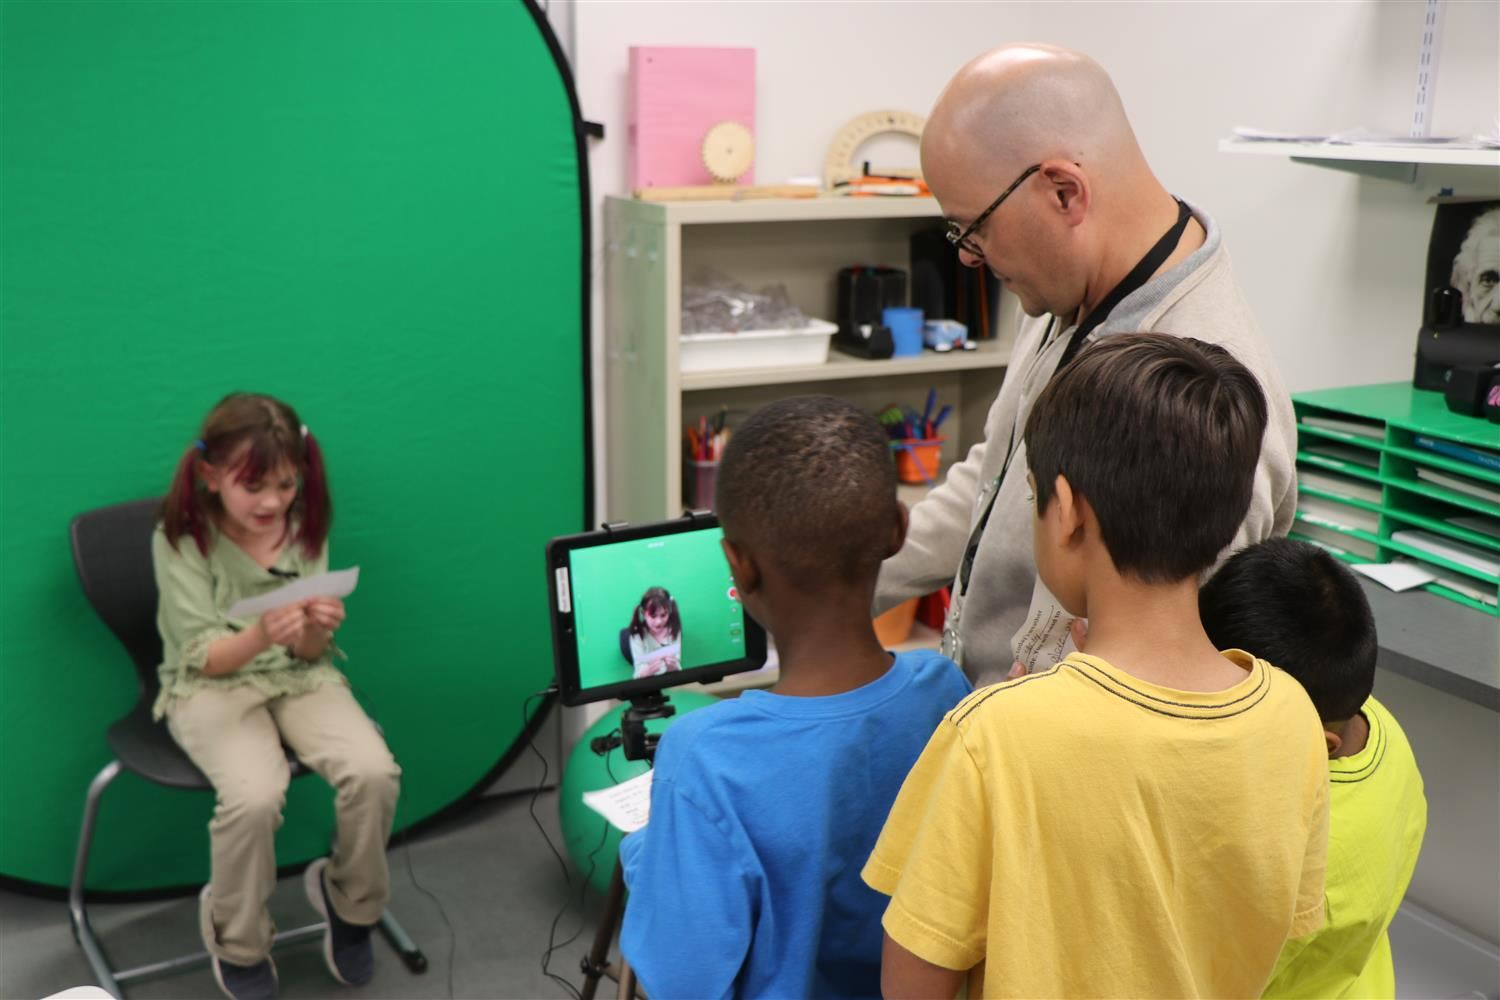 Students view image on IPAD will filming using a green screen.